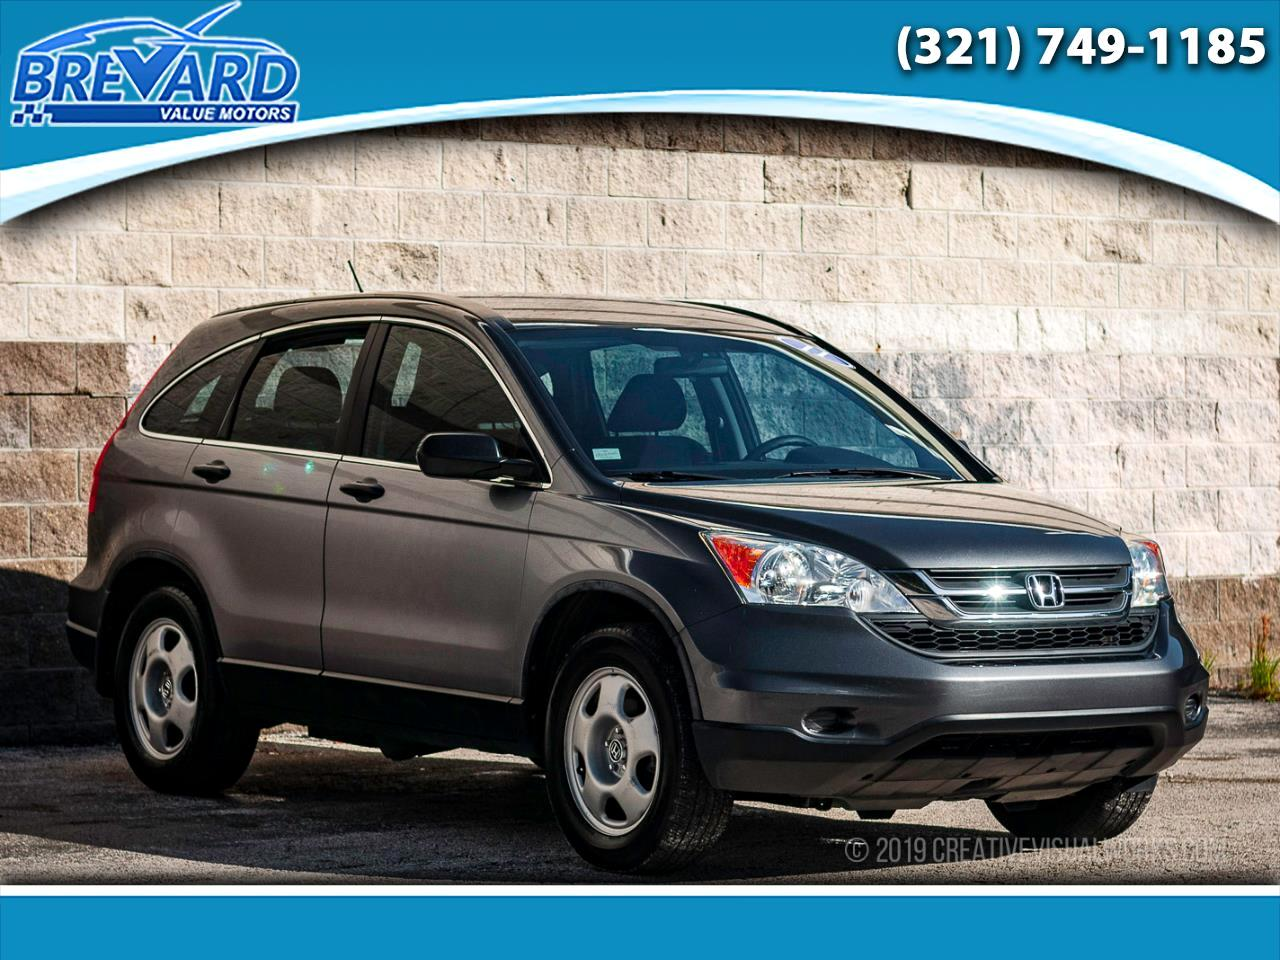 Honda CR-V LX 2WD 5-Speed AT 2011